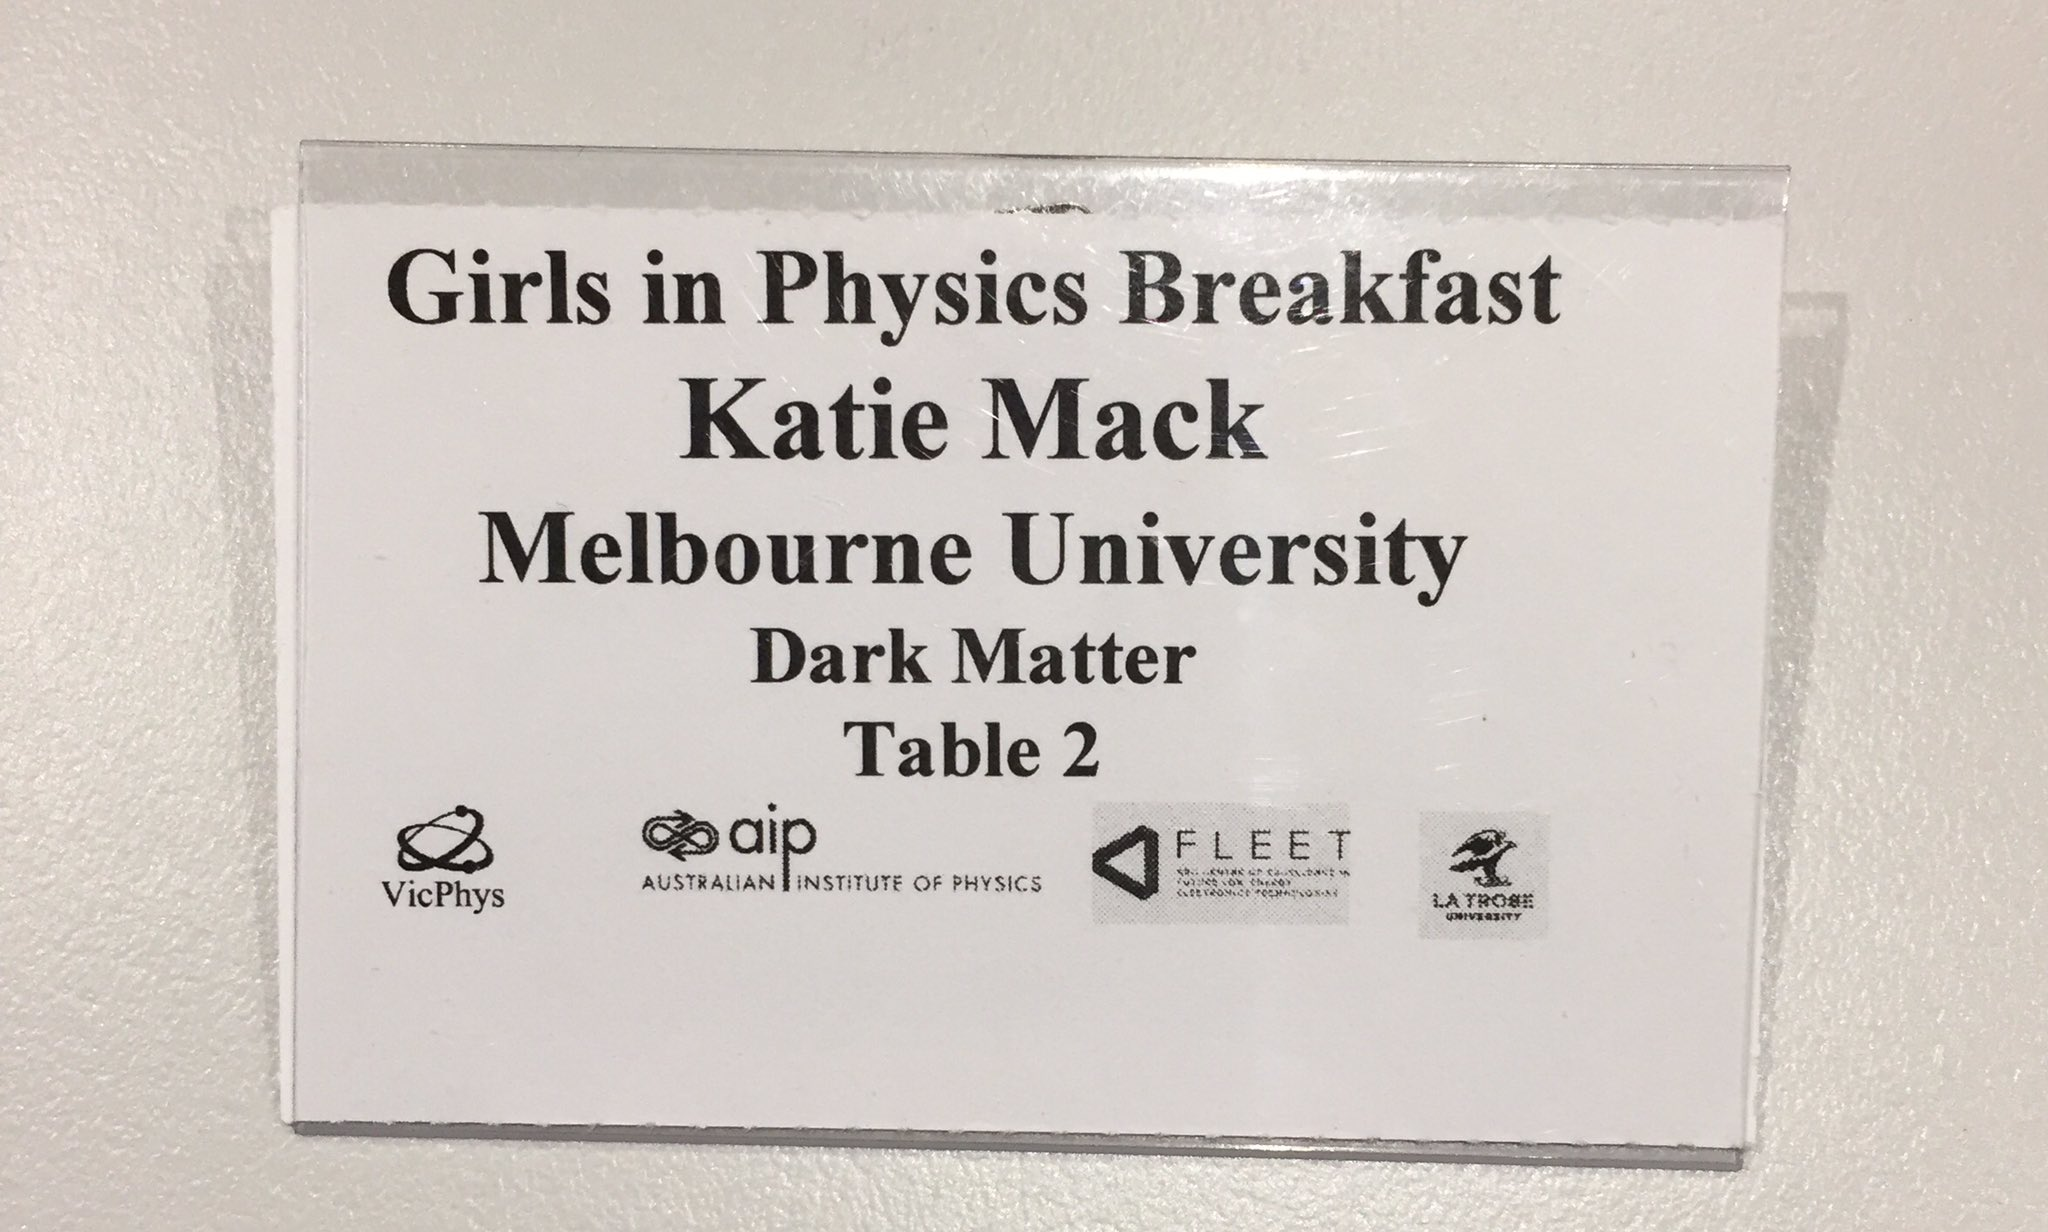 Hello my name is Katie, I belong to Melbourne University and dark matter. #WiPTour https://t.co/ocO33VEvVk